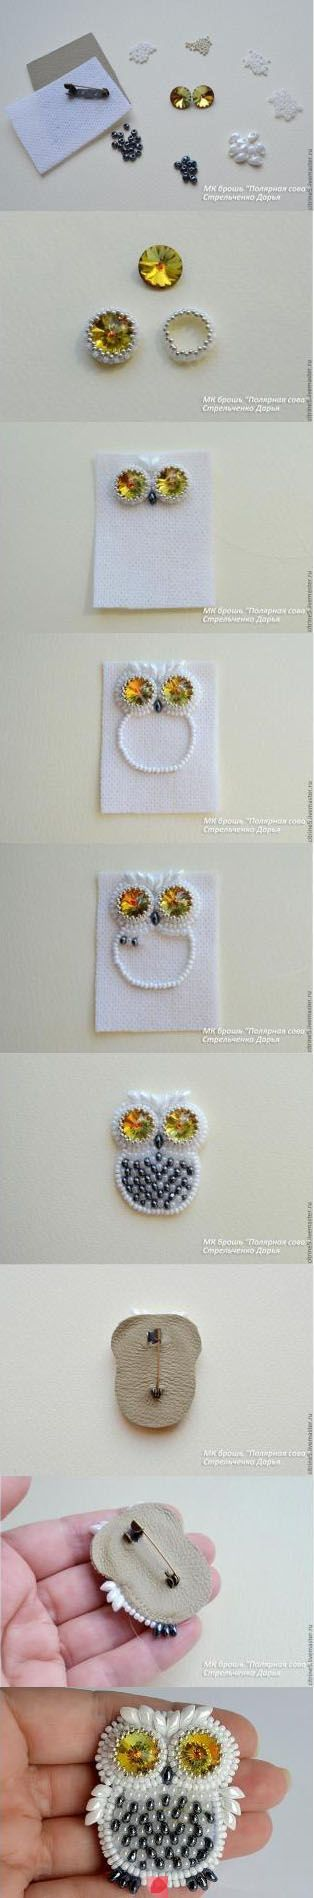 bead embroidery pattern